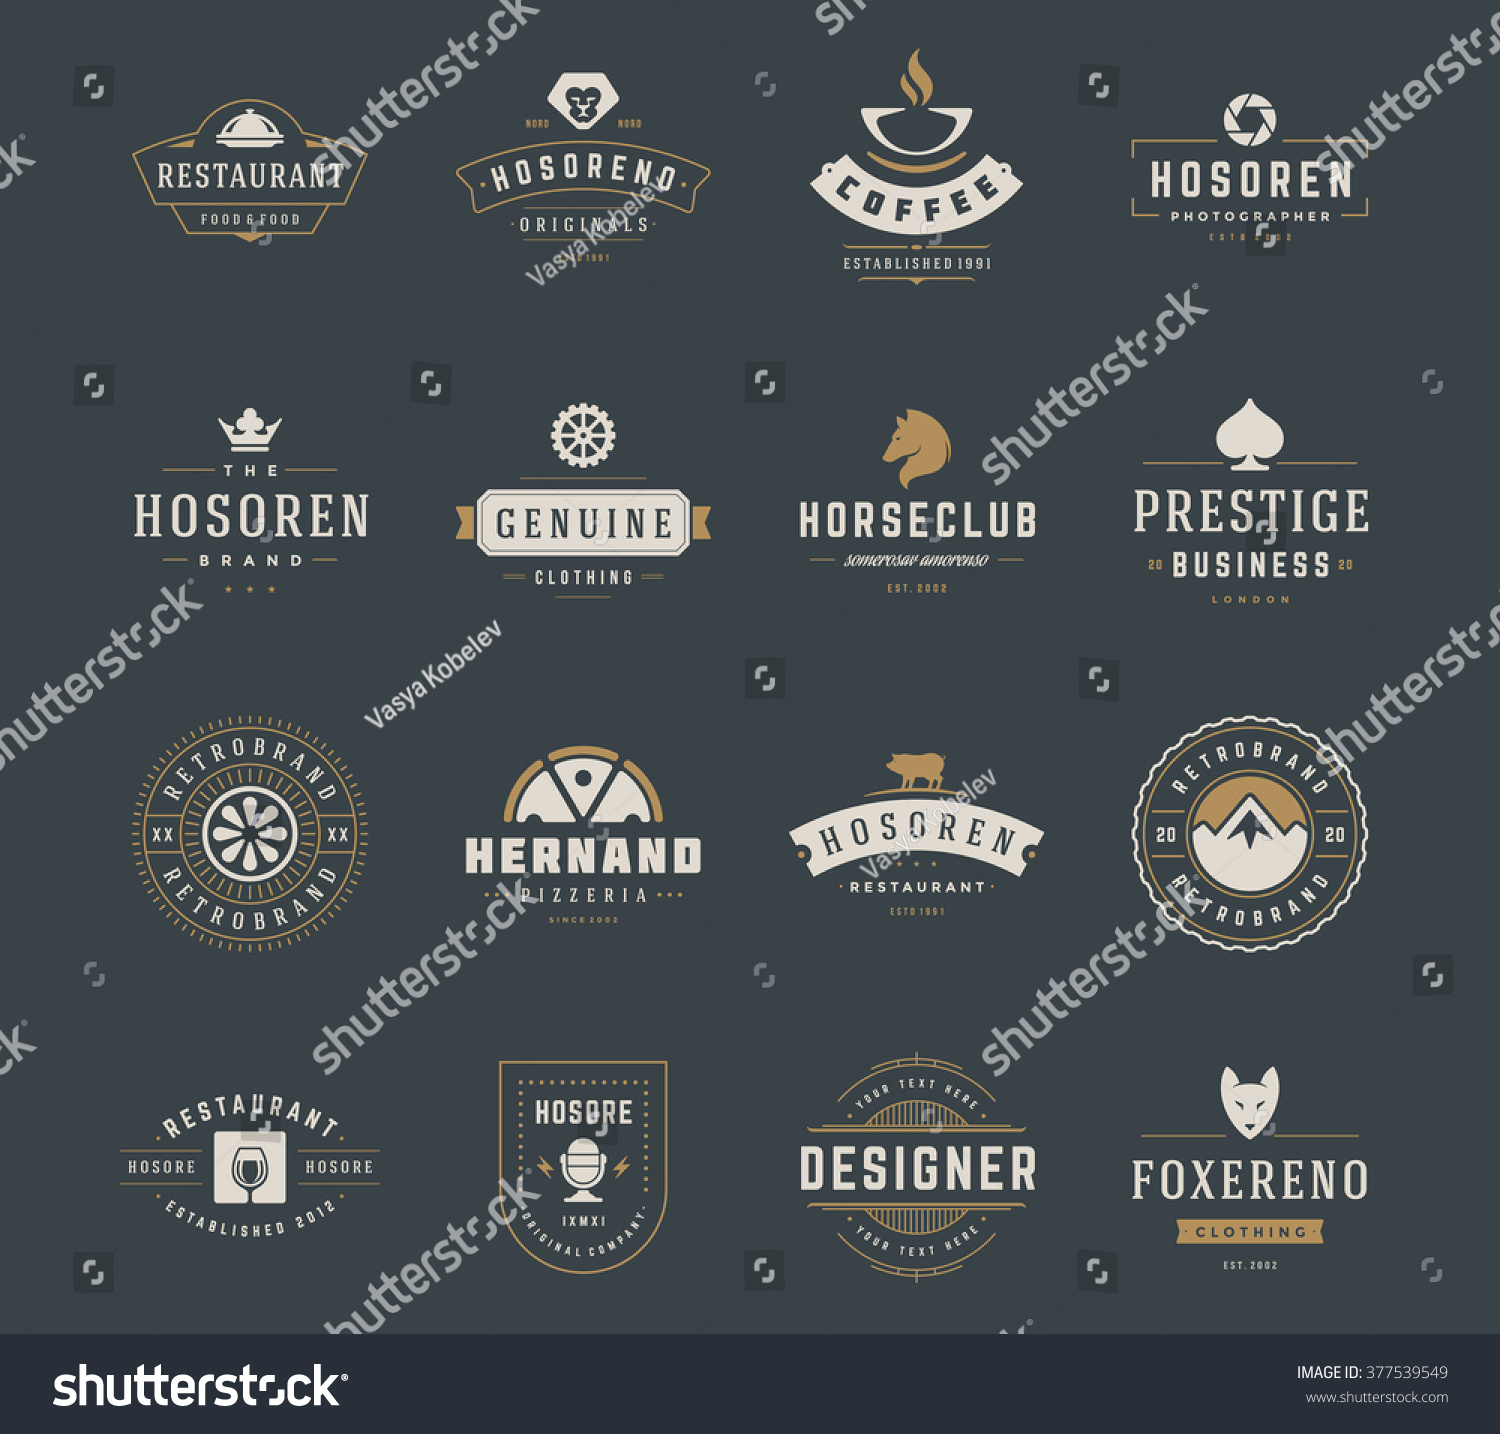 Vintage Logos Design Templates Set Vector design elements Logo Elements Logo symbols Logo Icons Logos Vector Symbols Design Retro Logos Fox Head Logo Mountain Logo Ornament Logo Crown Logo